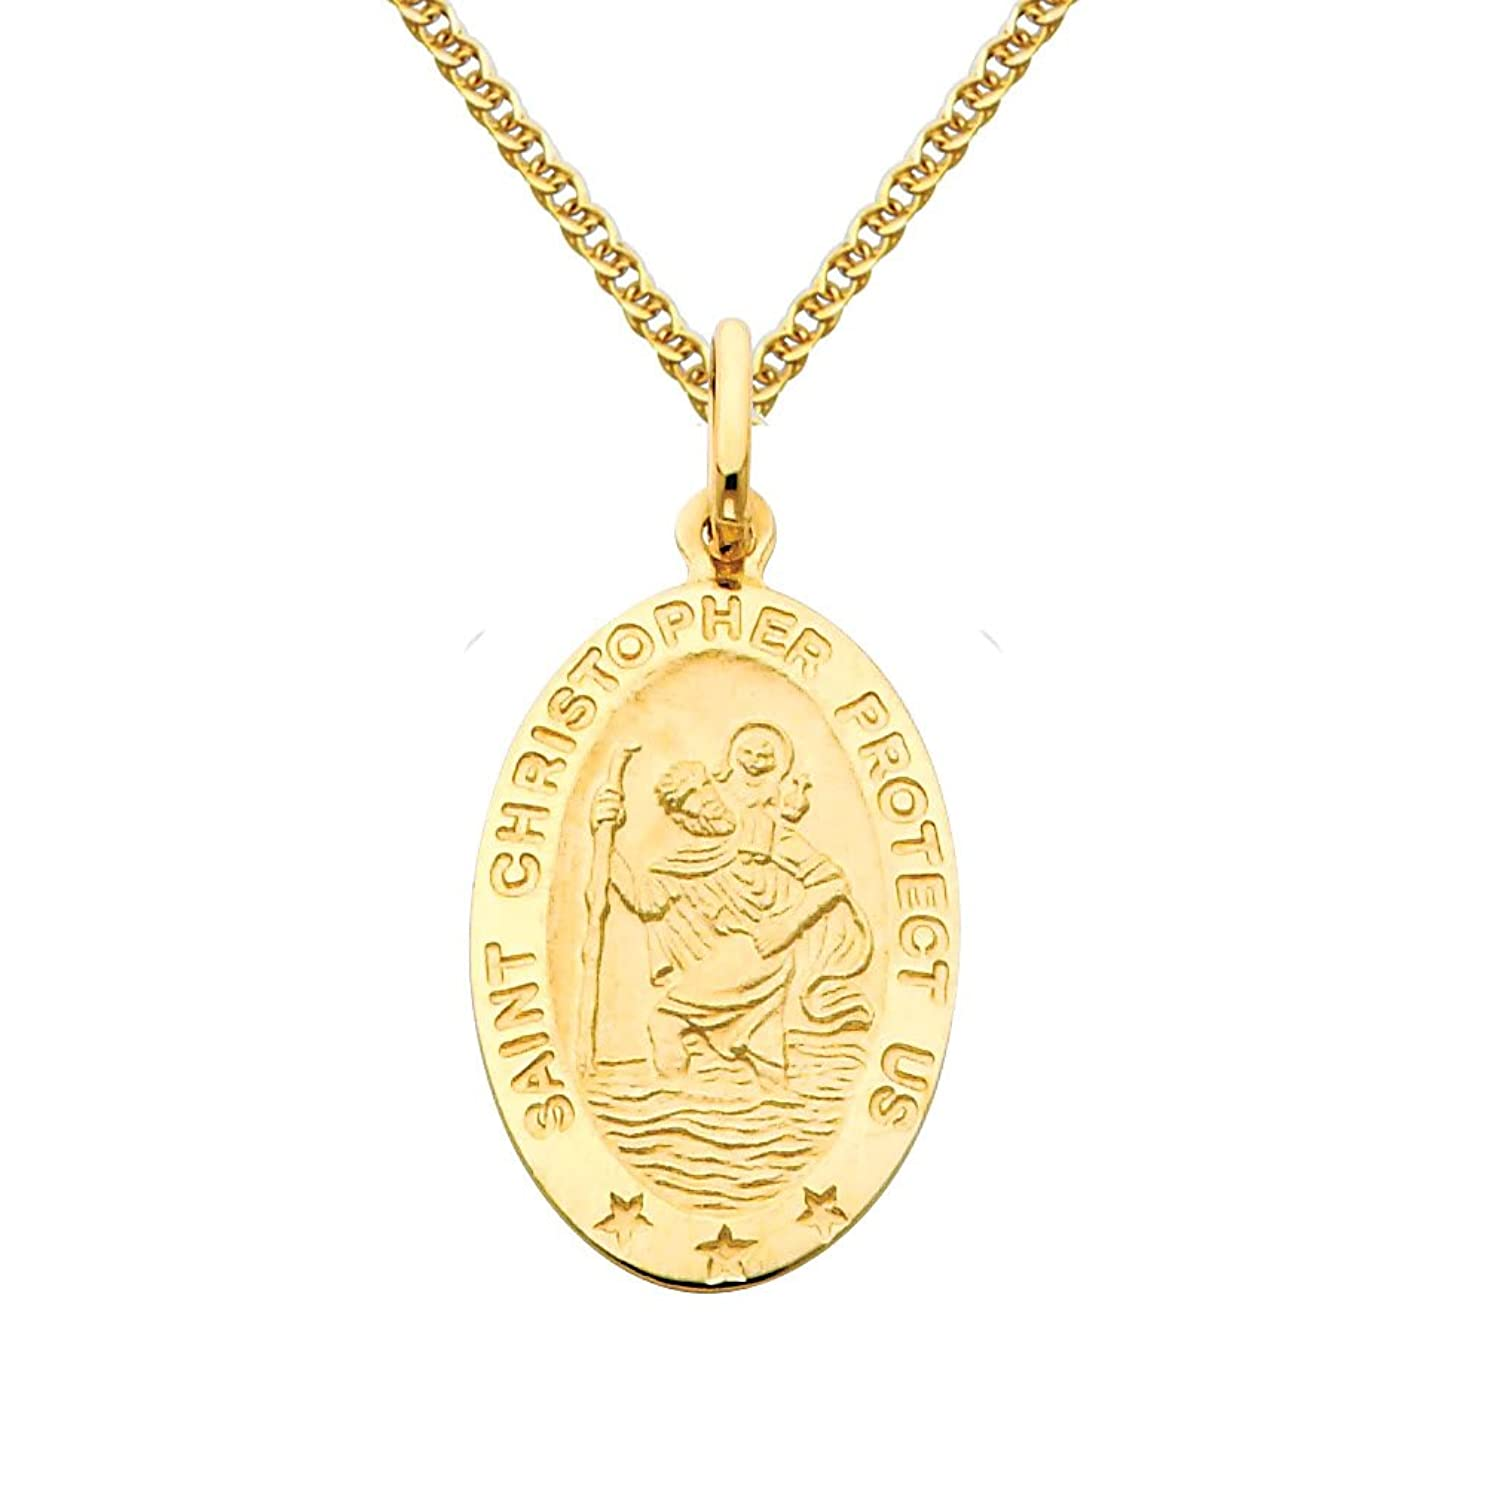 14k Yellow Gold Religious Saint Christopher Medal Pendant with 1.5mm Flat Open Wheat Chain Necklace